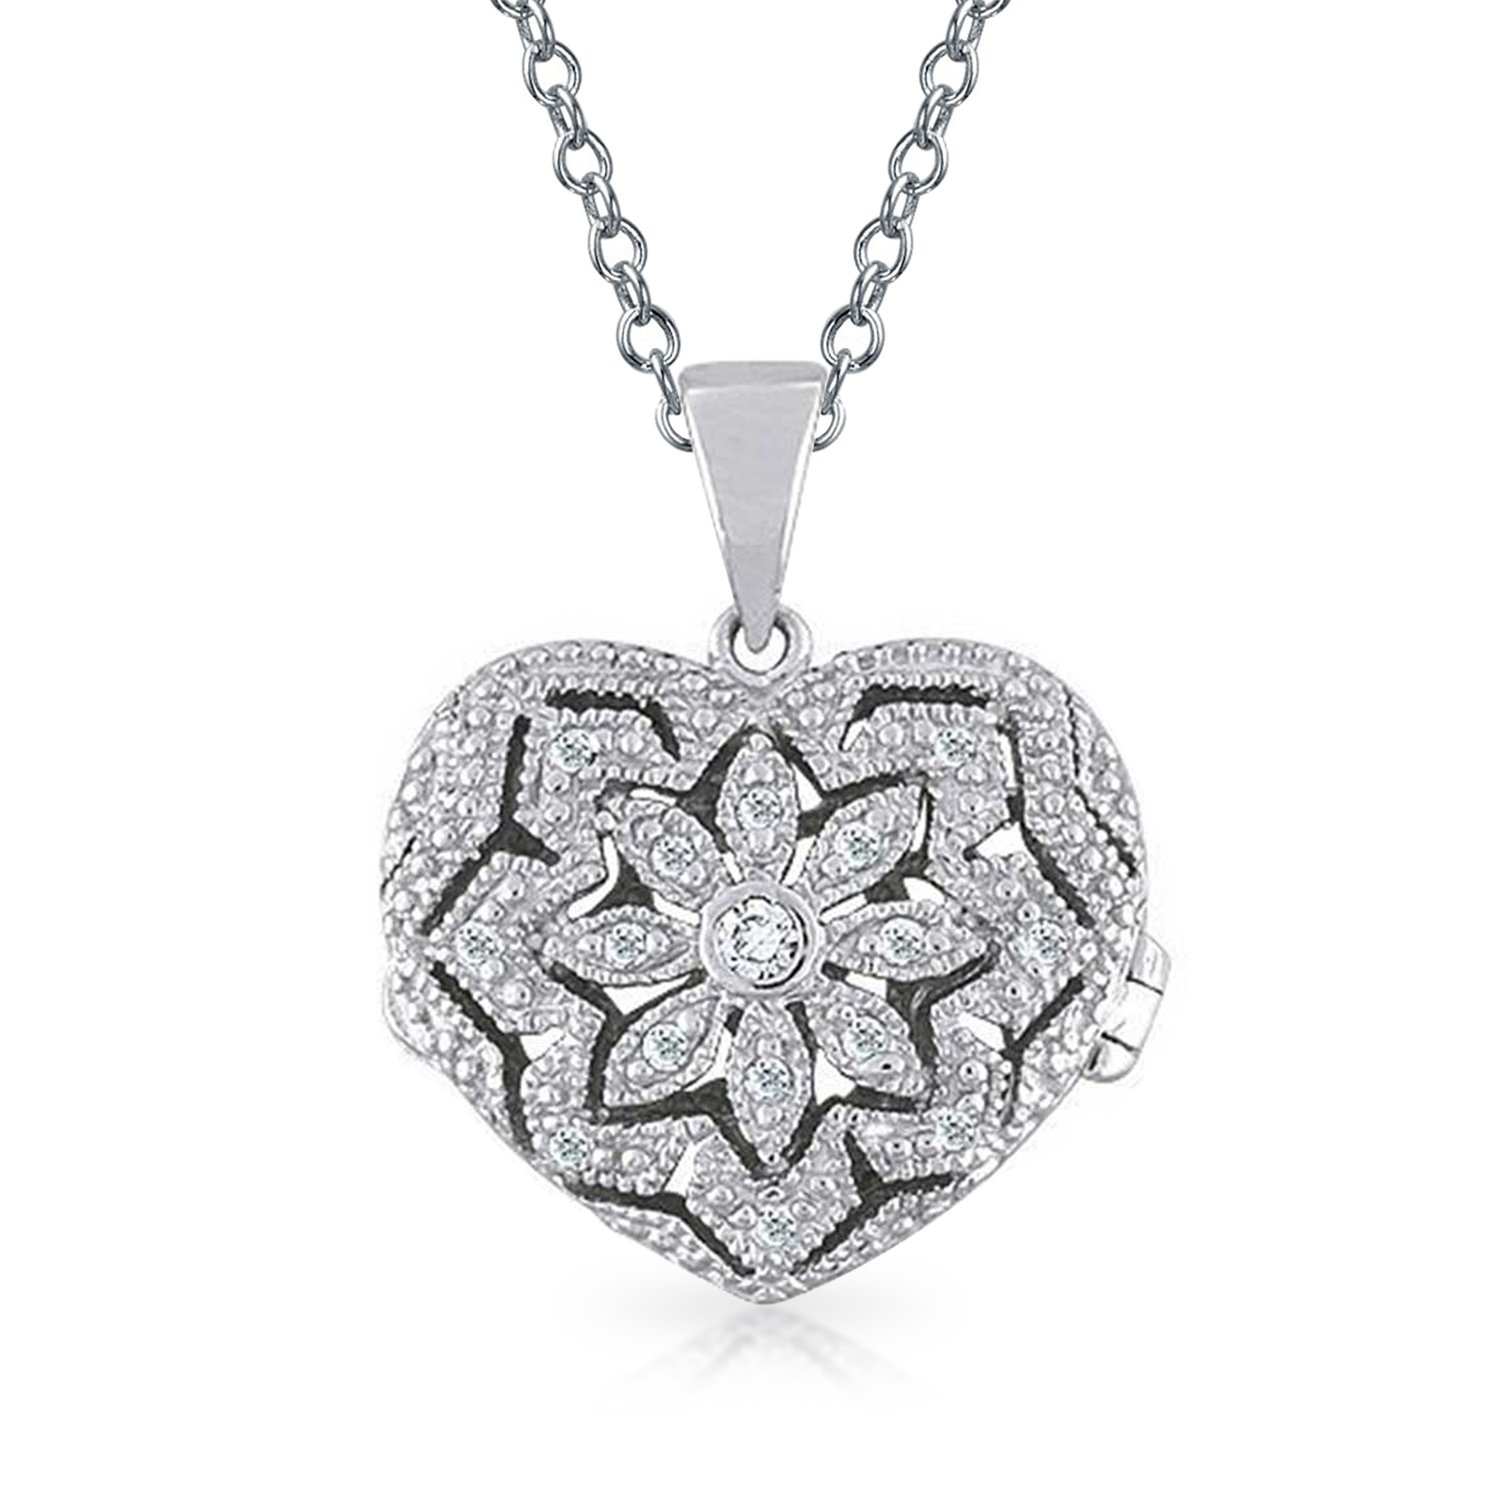 Vintage Style Filigree Pave Heart Locket Pendant Sterling Silver Necklace 18 Inches by Bling Jewelry